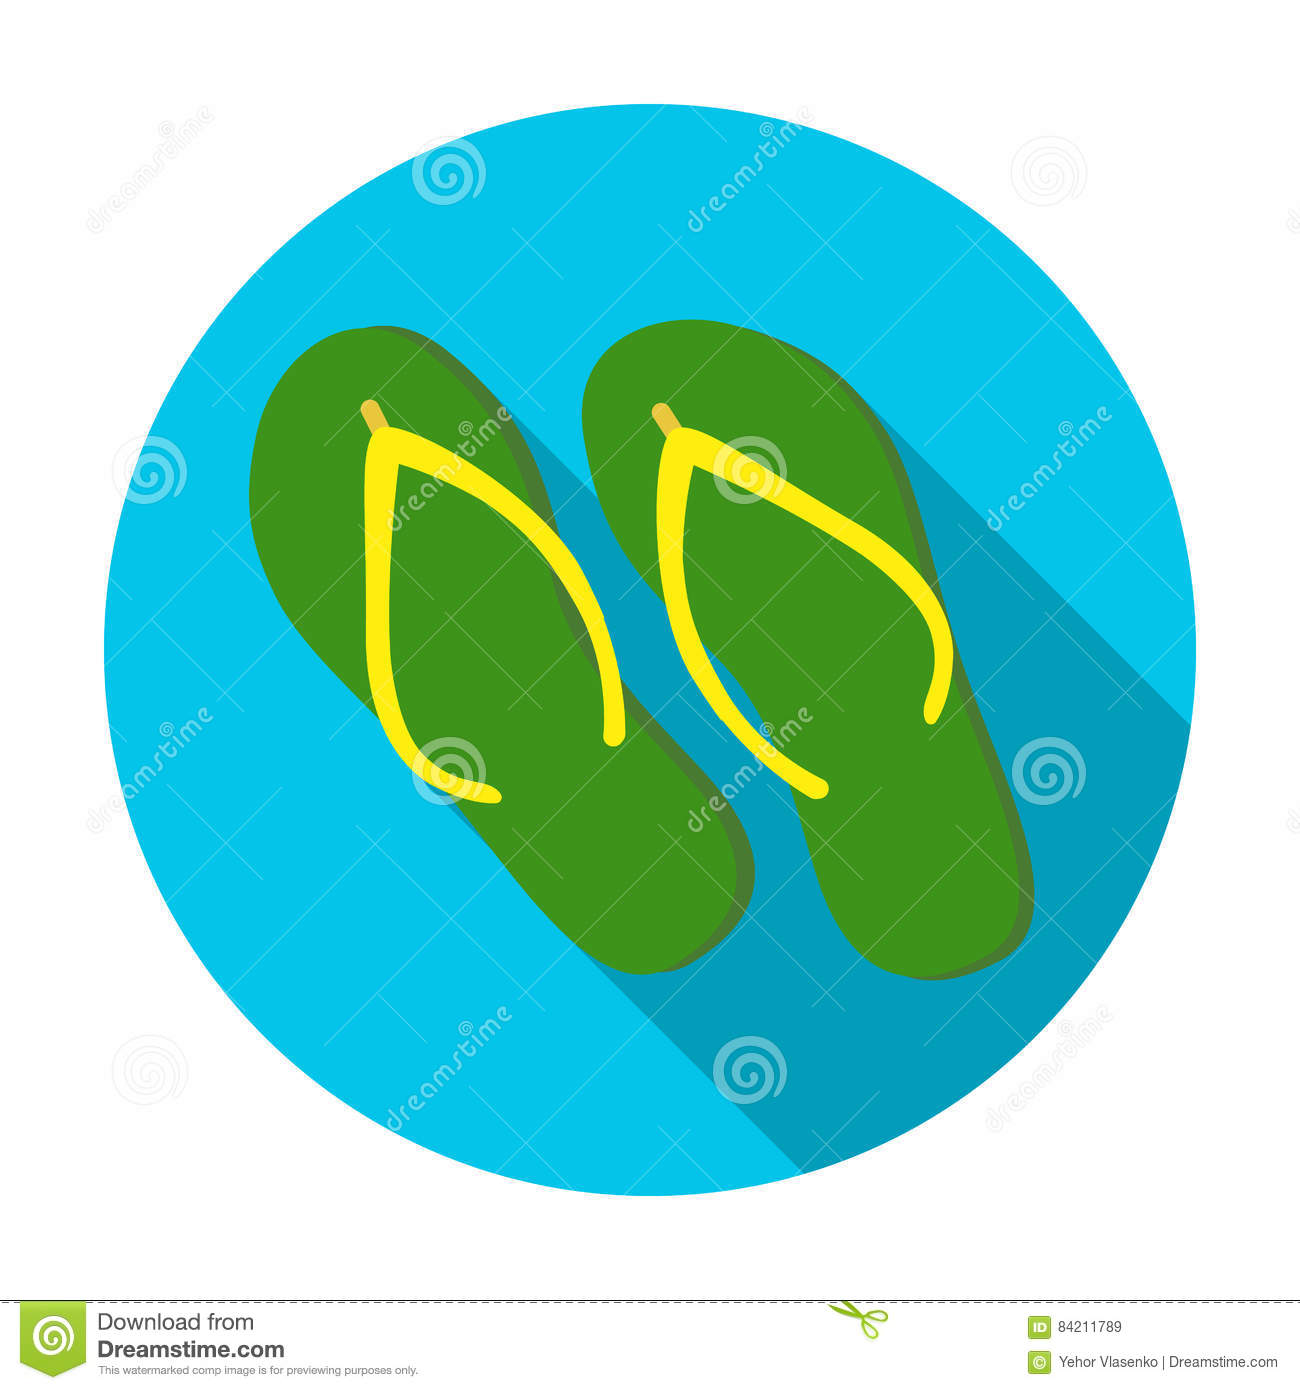 26c17782dd6d Royalty-Free Vector. Green flip-flops icon in flat style isolated on white  background.